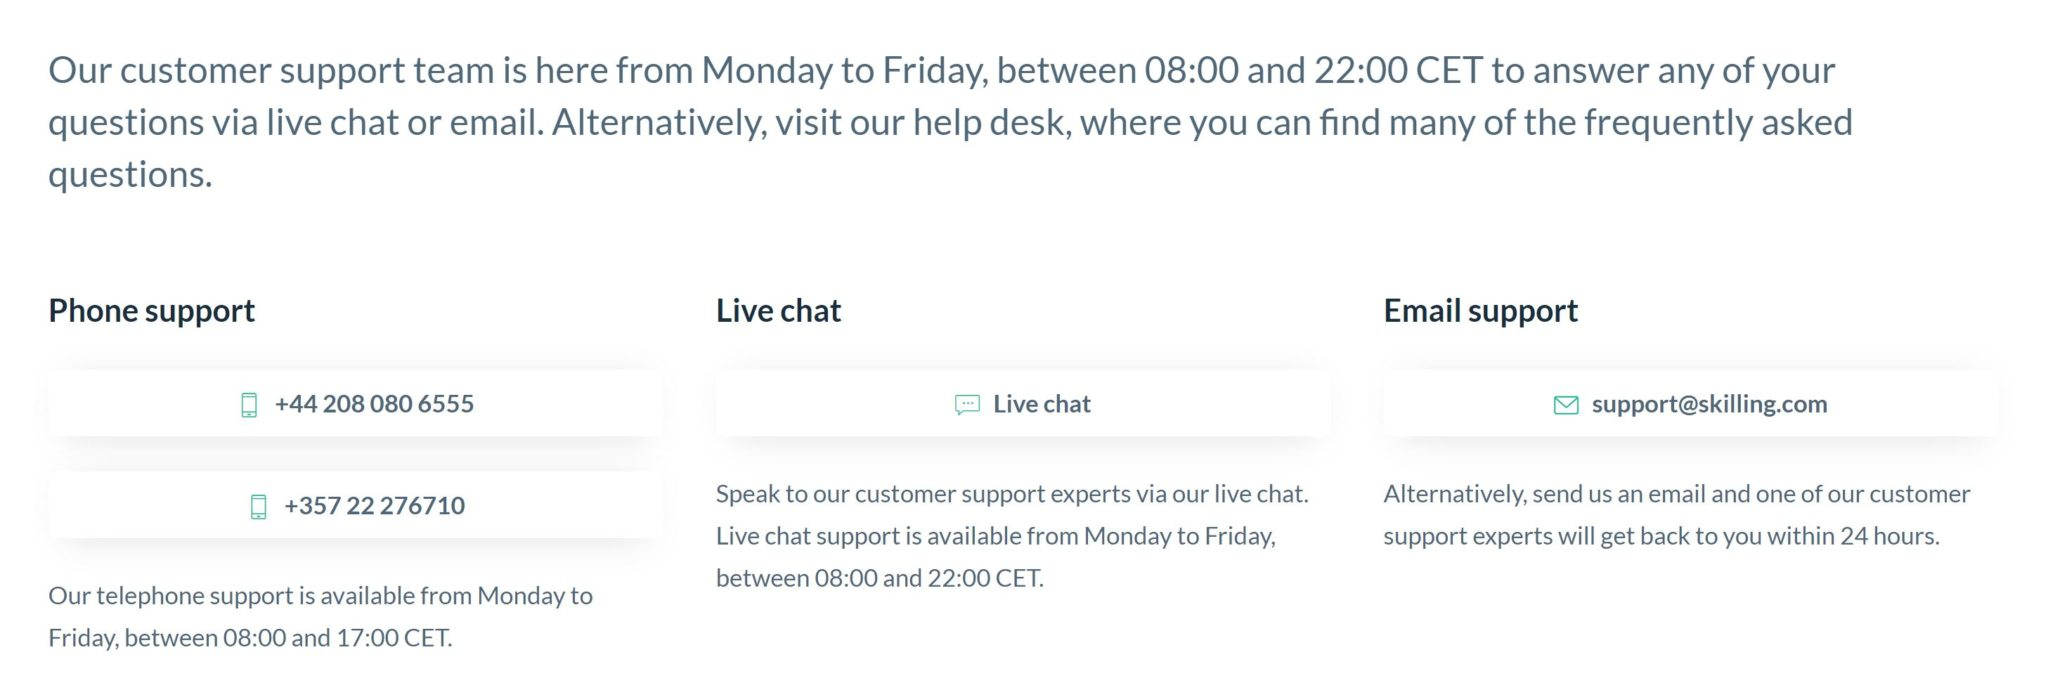 Contact Skilling by email, live chat, and phone